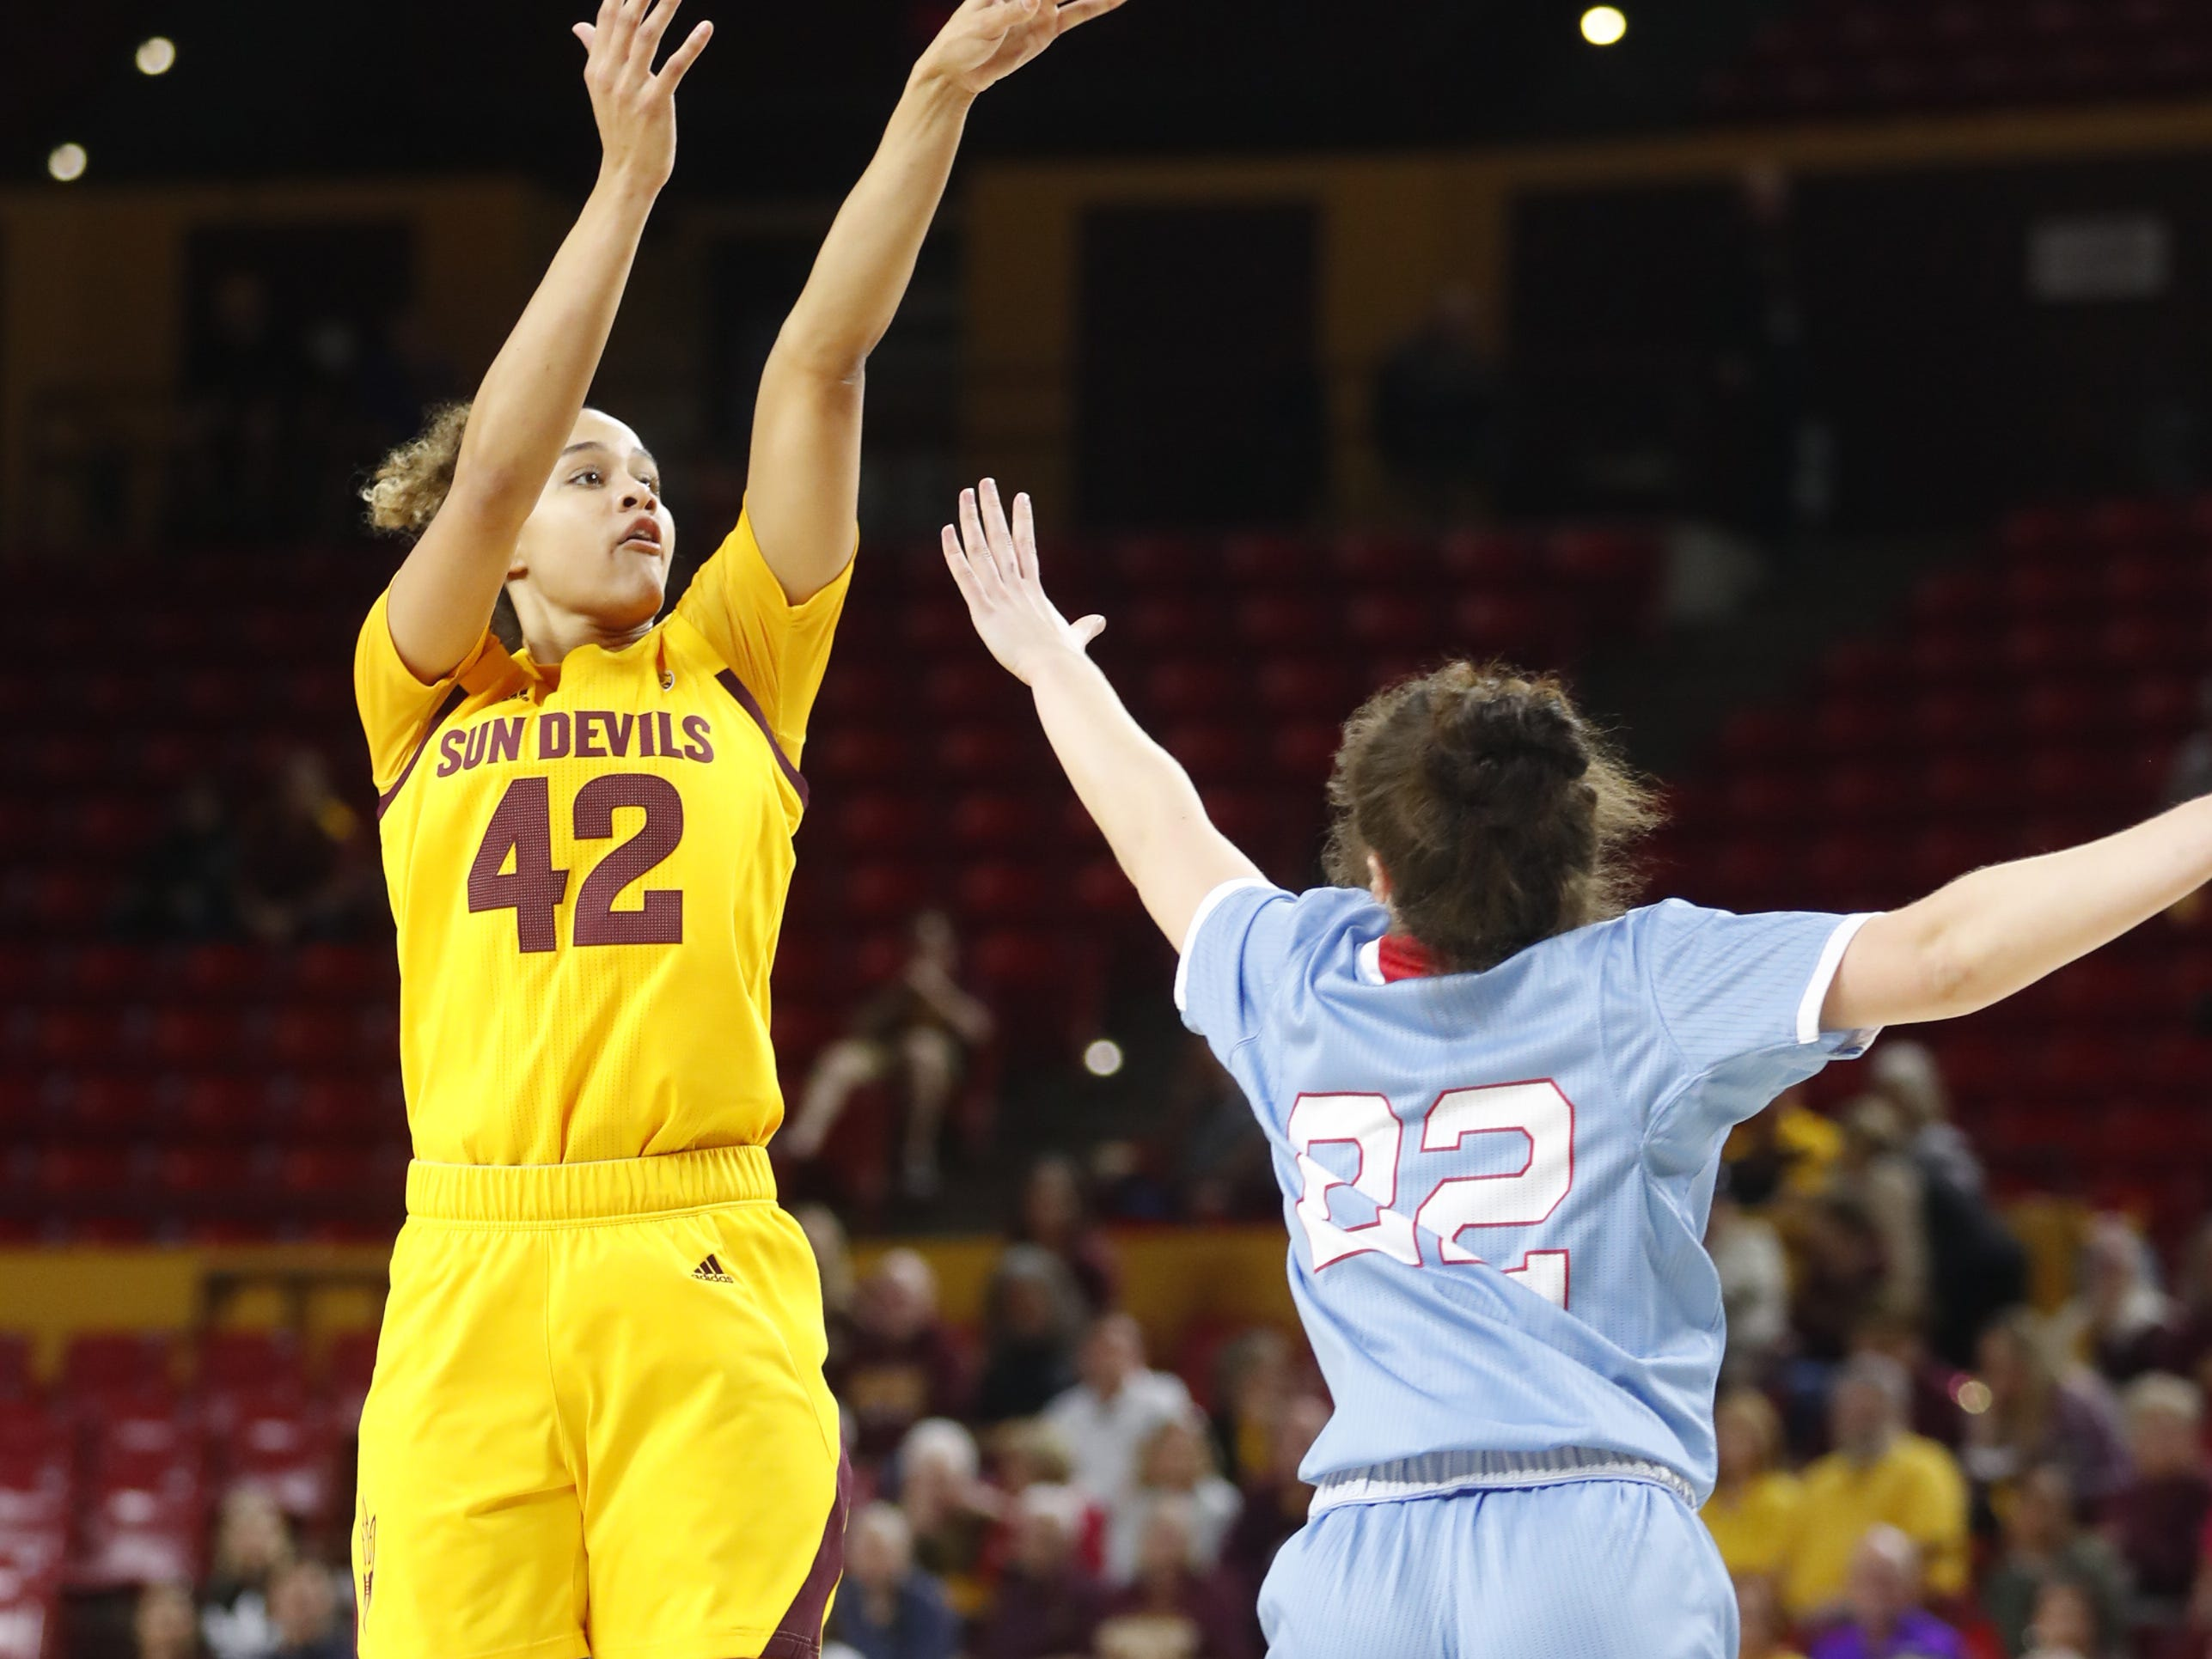 ASU's Kianna Ibis (42) shoots against Louisiana Tech's Grayson Bright (22) during the first half at Wells Fargo Arena in Tempe, Ariz. on November 30, 2018.